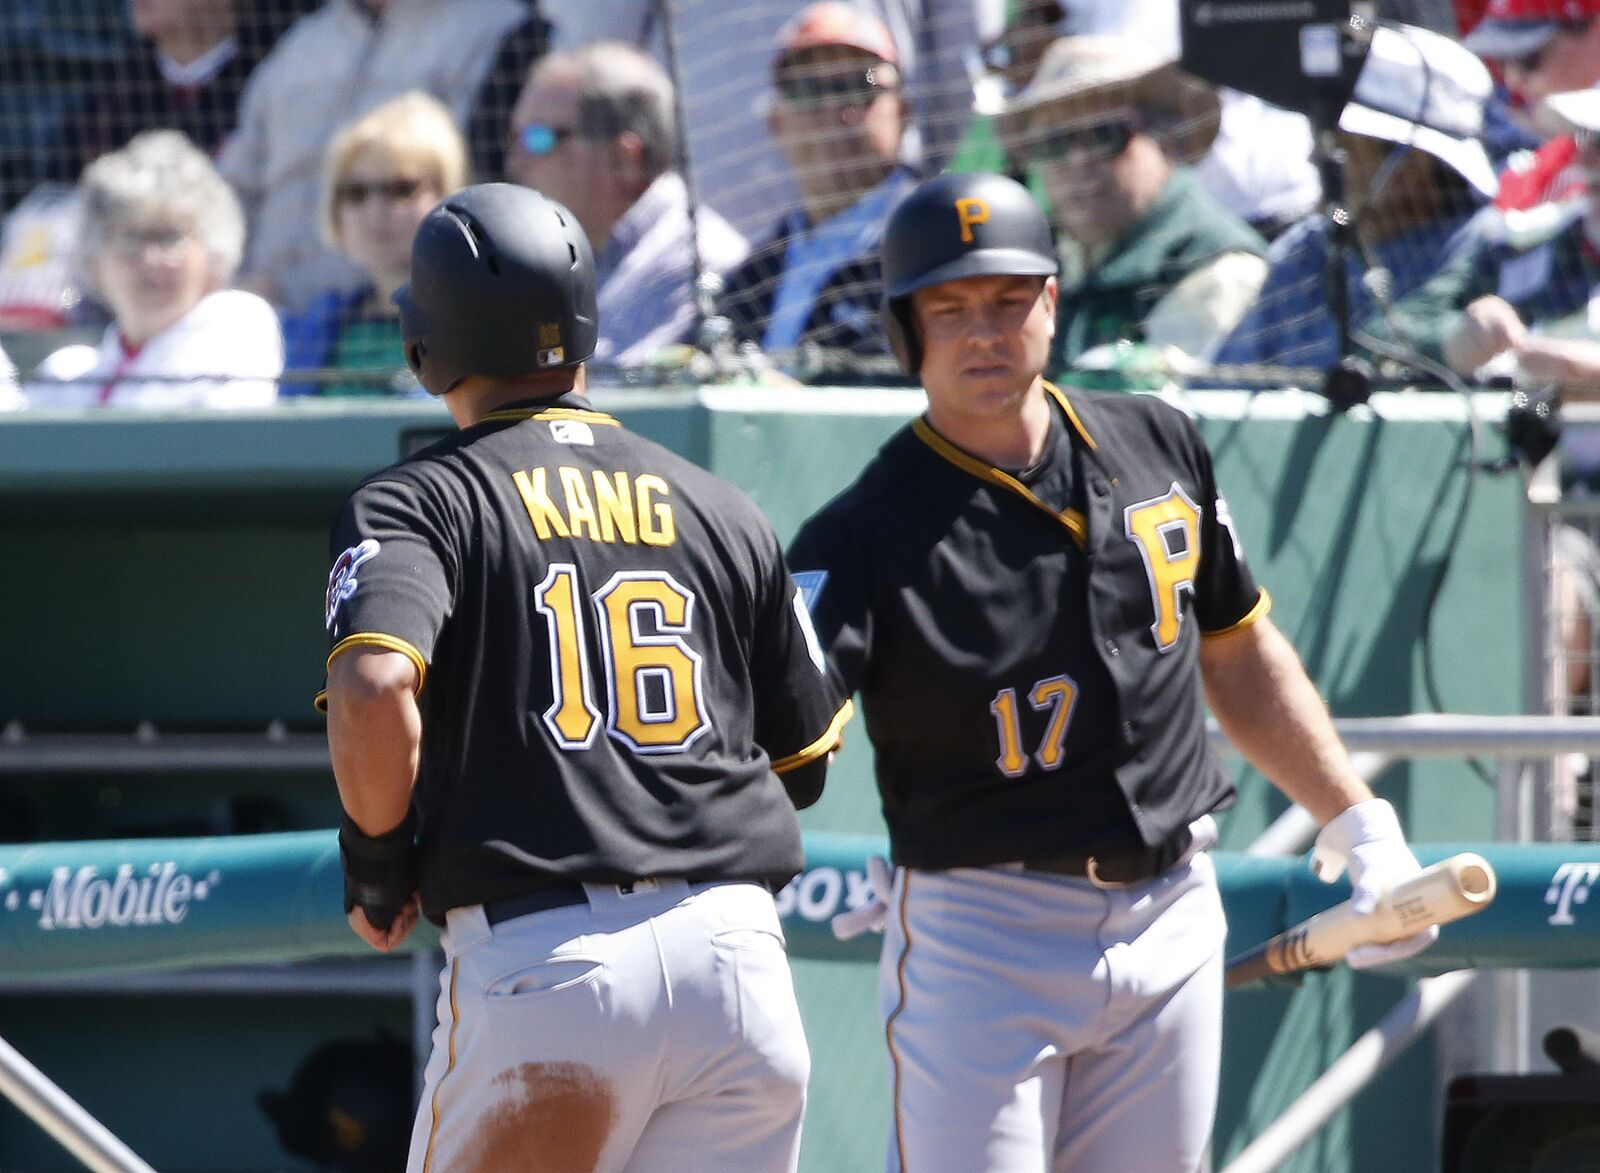 Pittsburgh Pirates: The Curious Case of Colin Moran